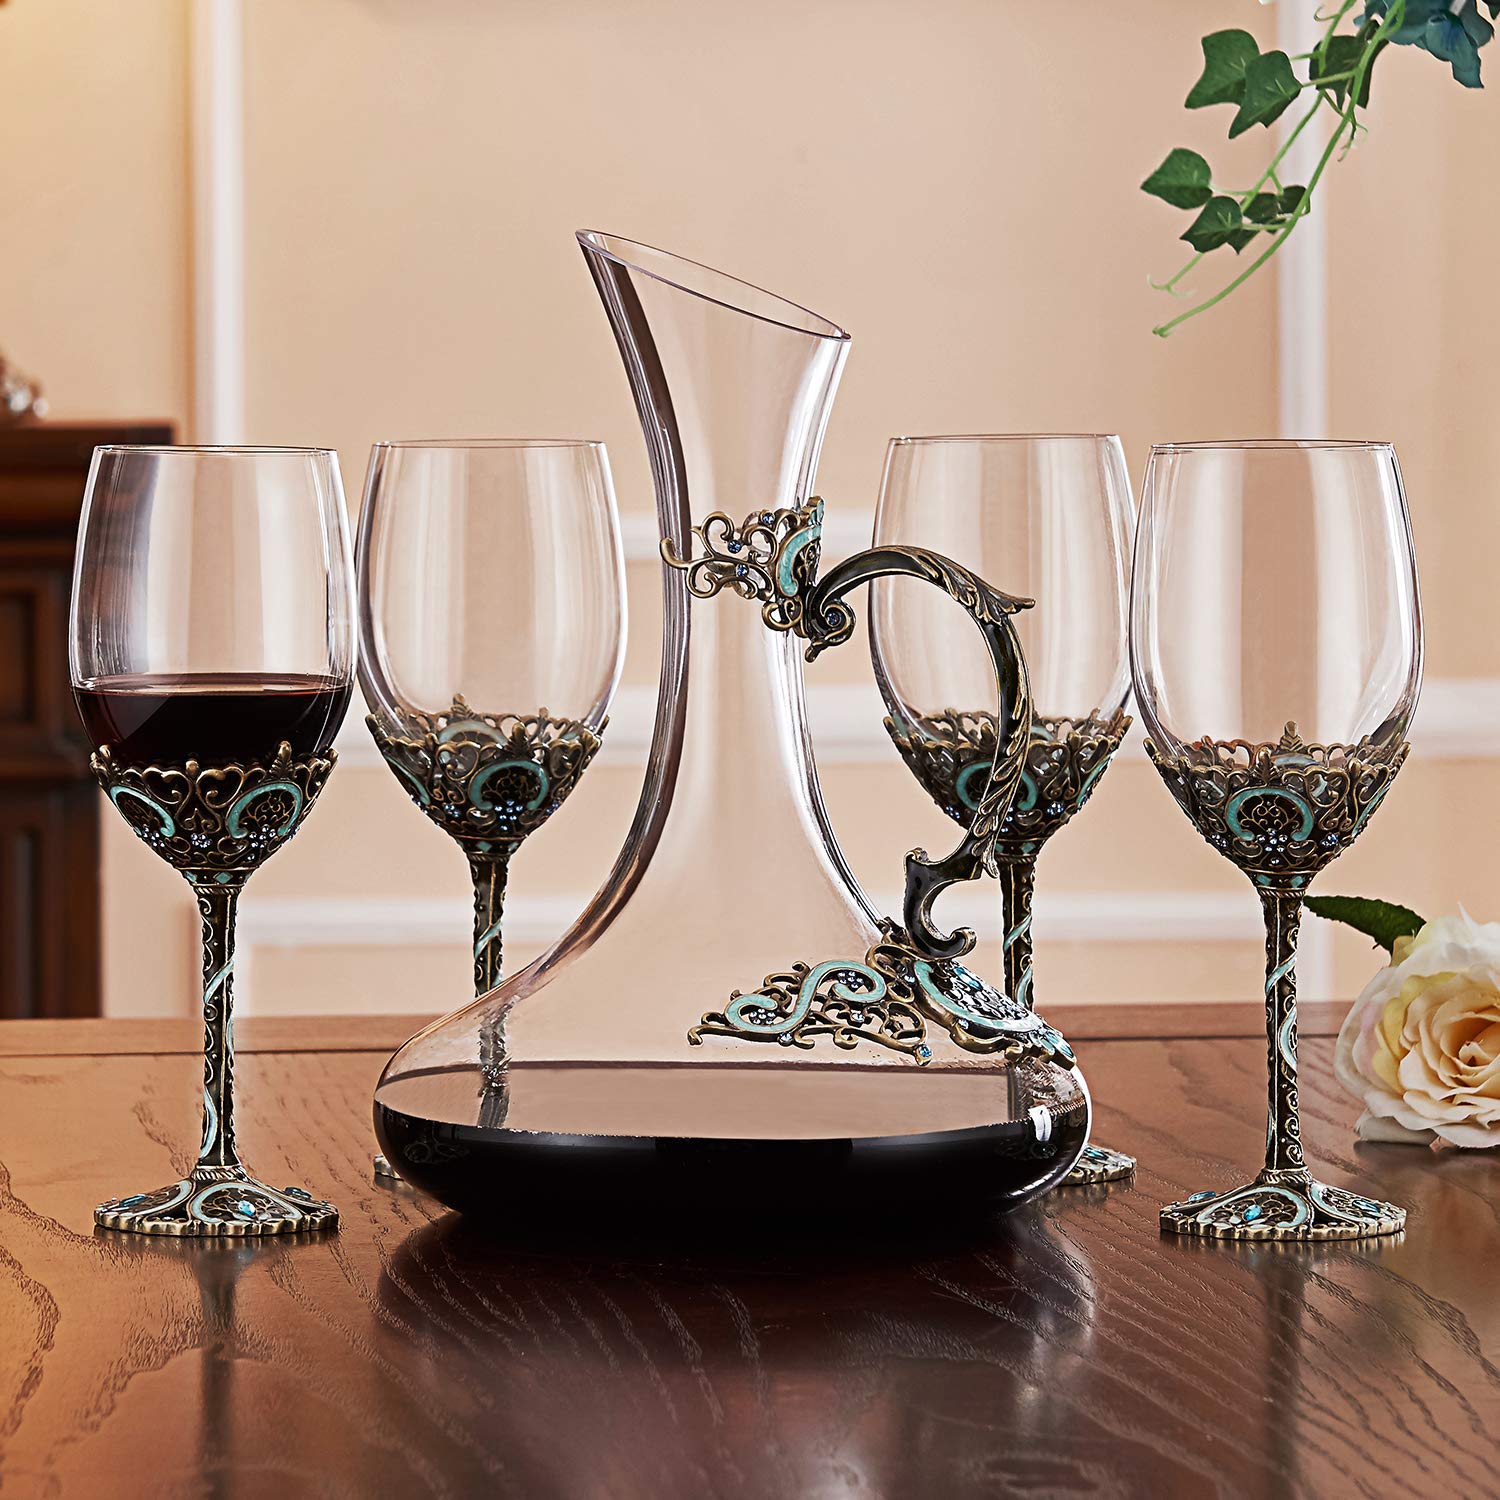 12oz Wine Glasses Set of 2 Hand Blown Crystal Wine Glasses Made of Lead-free Glass and Enamels